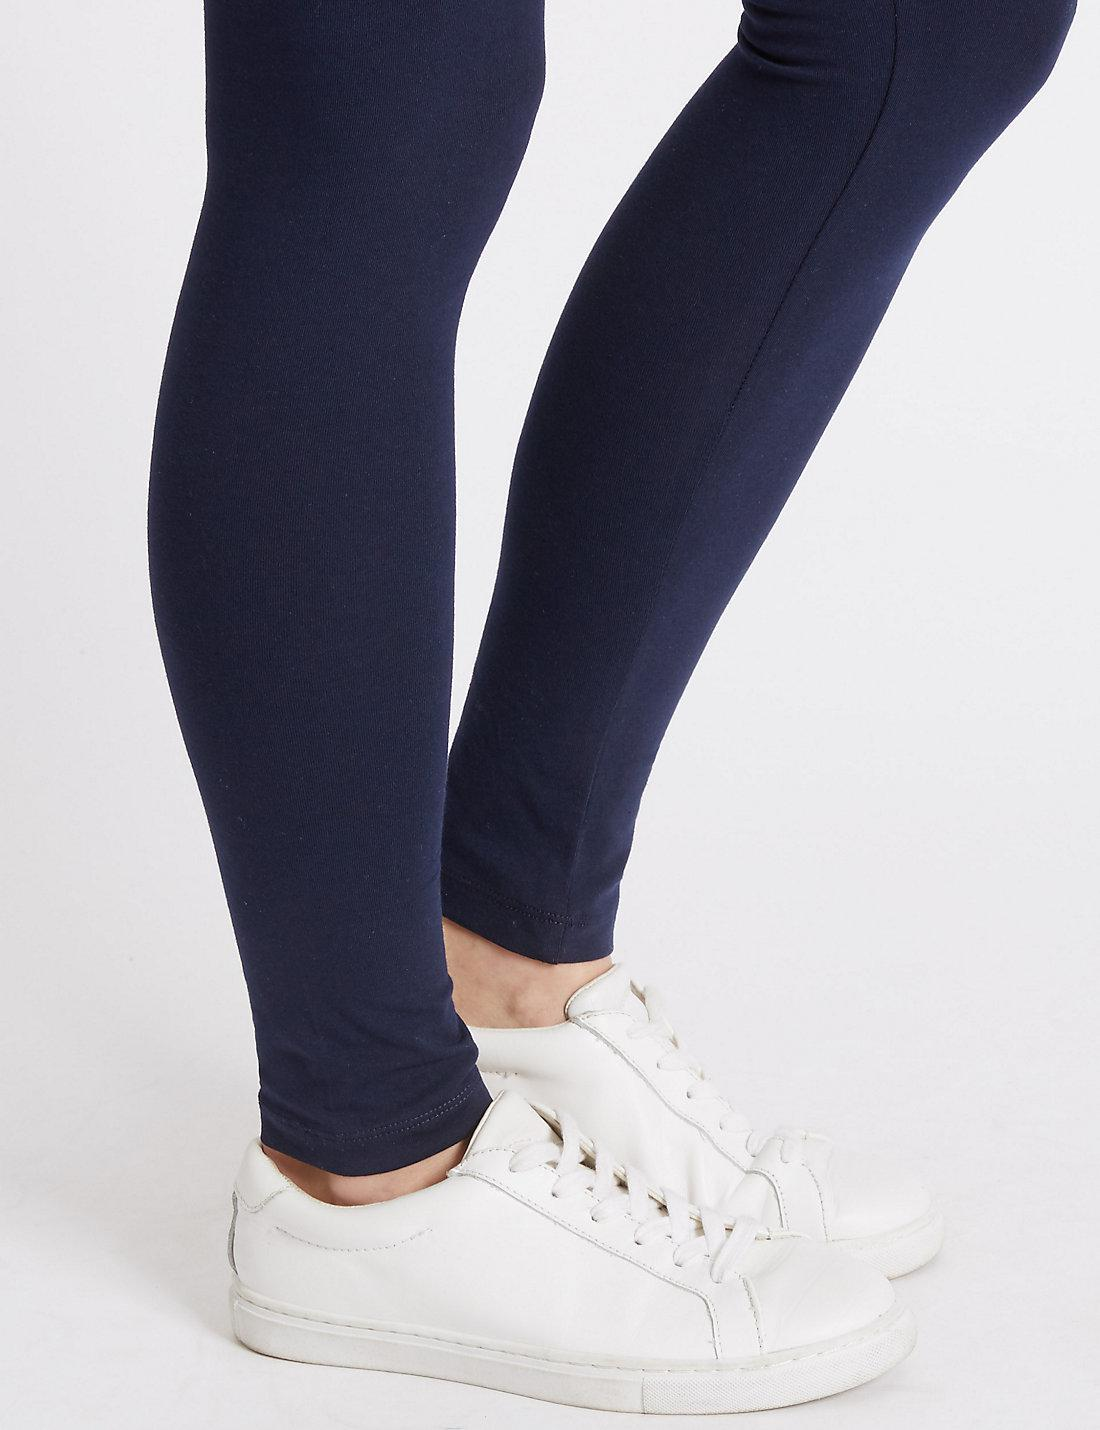 b07f7457a4fdb Lyst - Marks & Spencer Maternity Cotton Leggings With Stretch in Blue